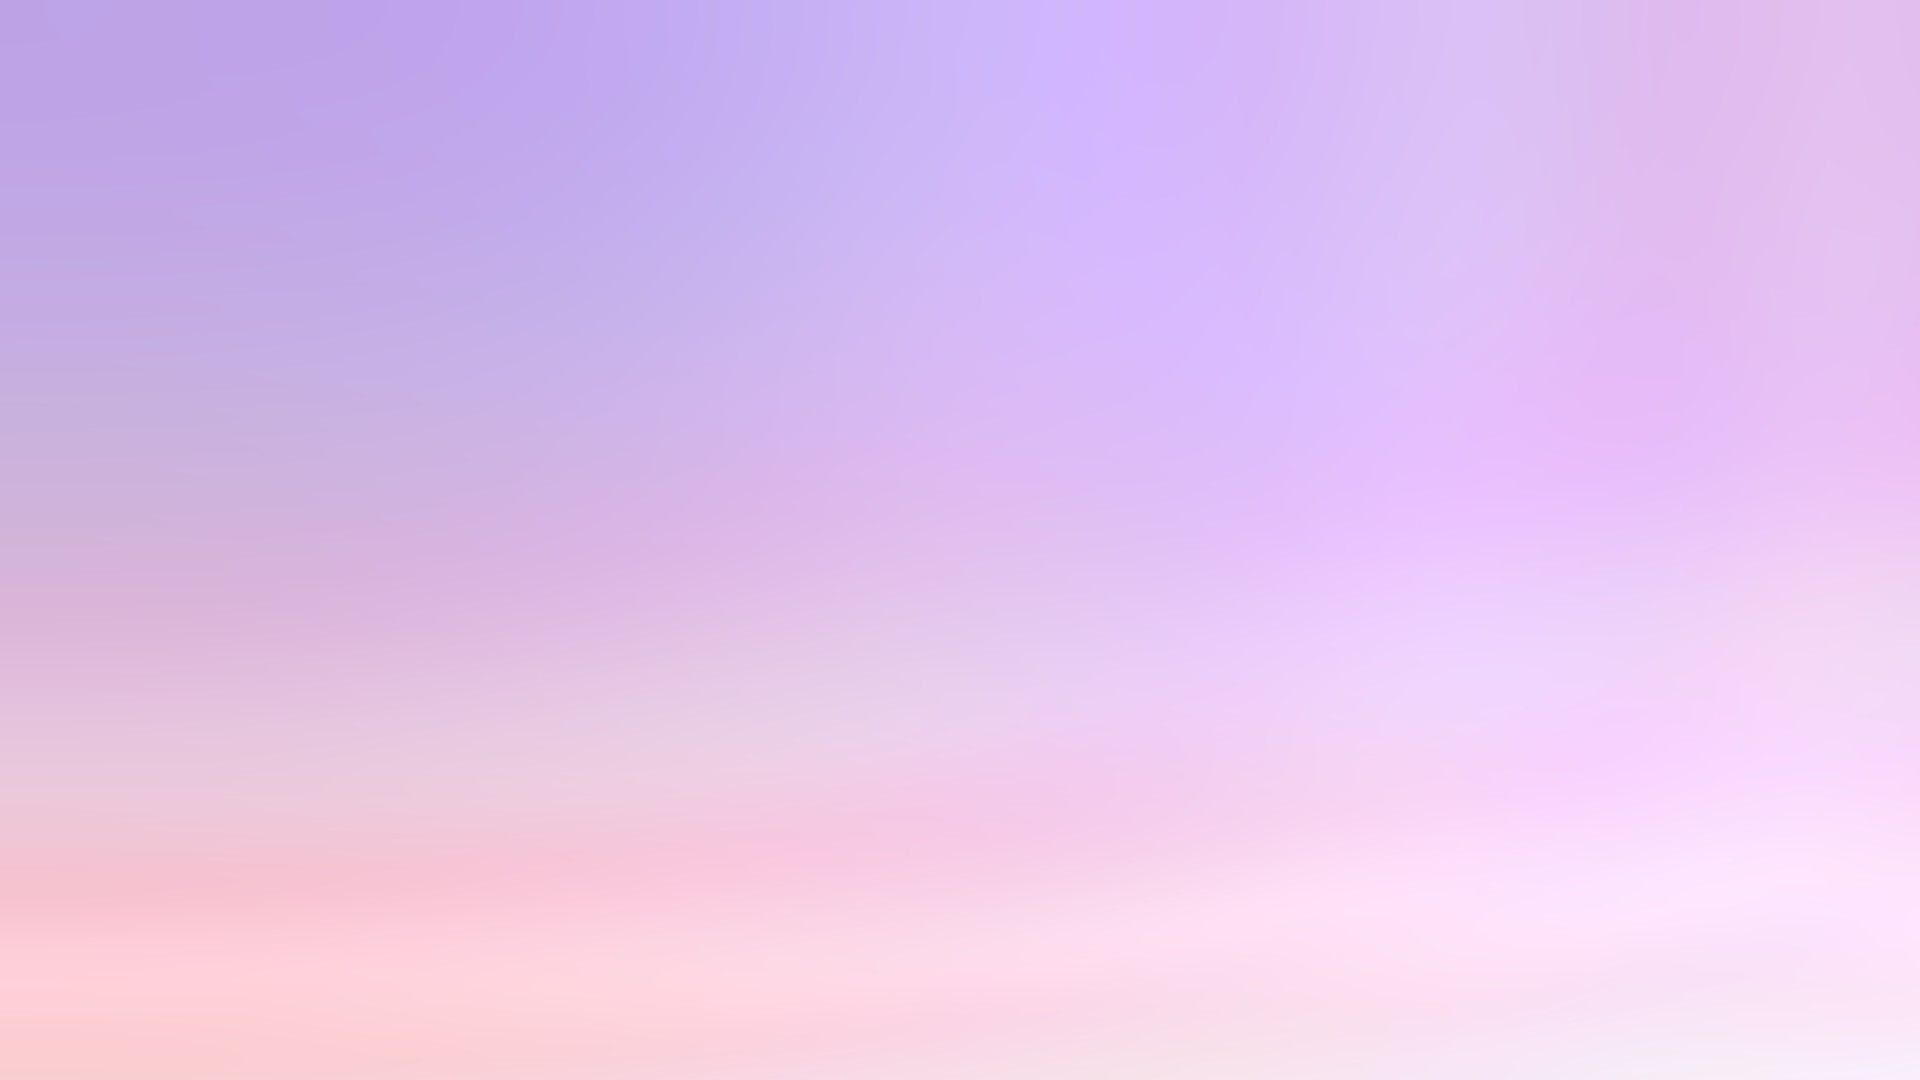 Lilac Aesthetic Wallpapers Top Free Lilac Aesthetic